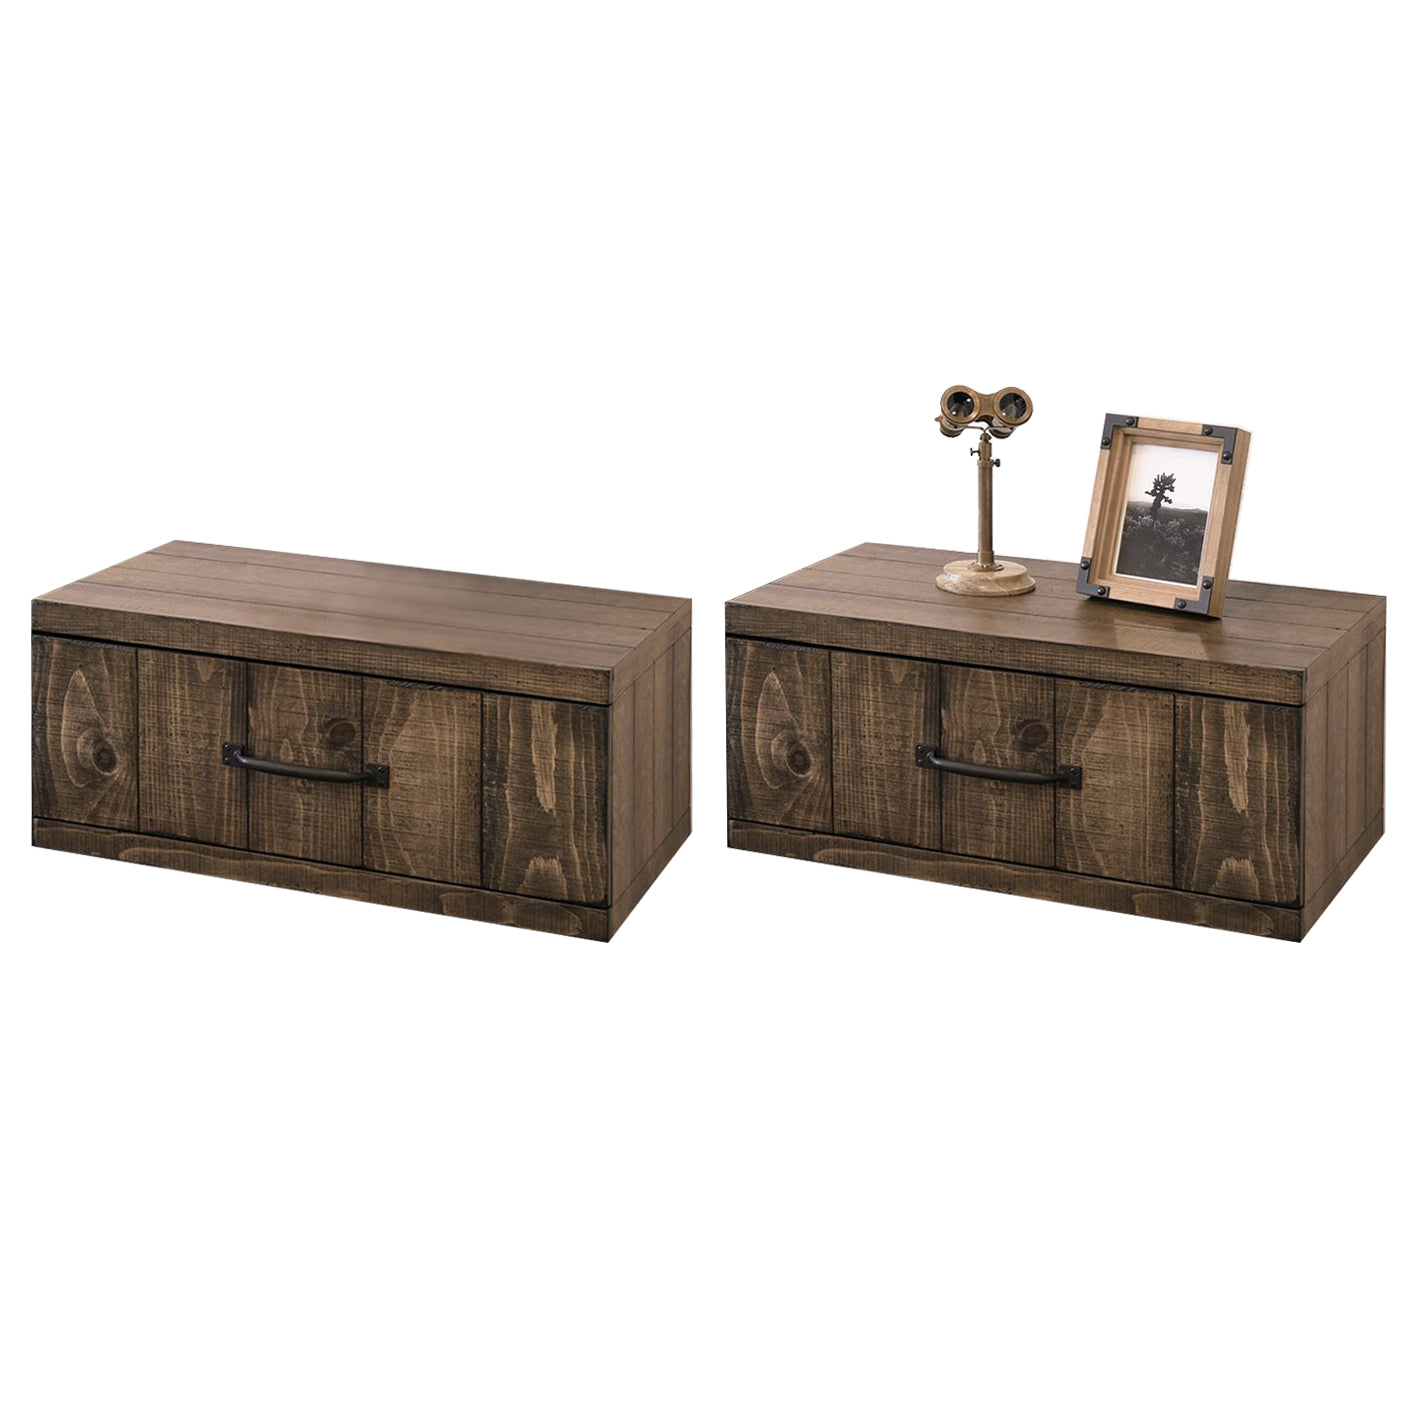 Rustic Wall Mounted Nightstands Farmhouse Floating Drawers Spice